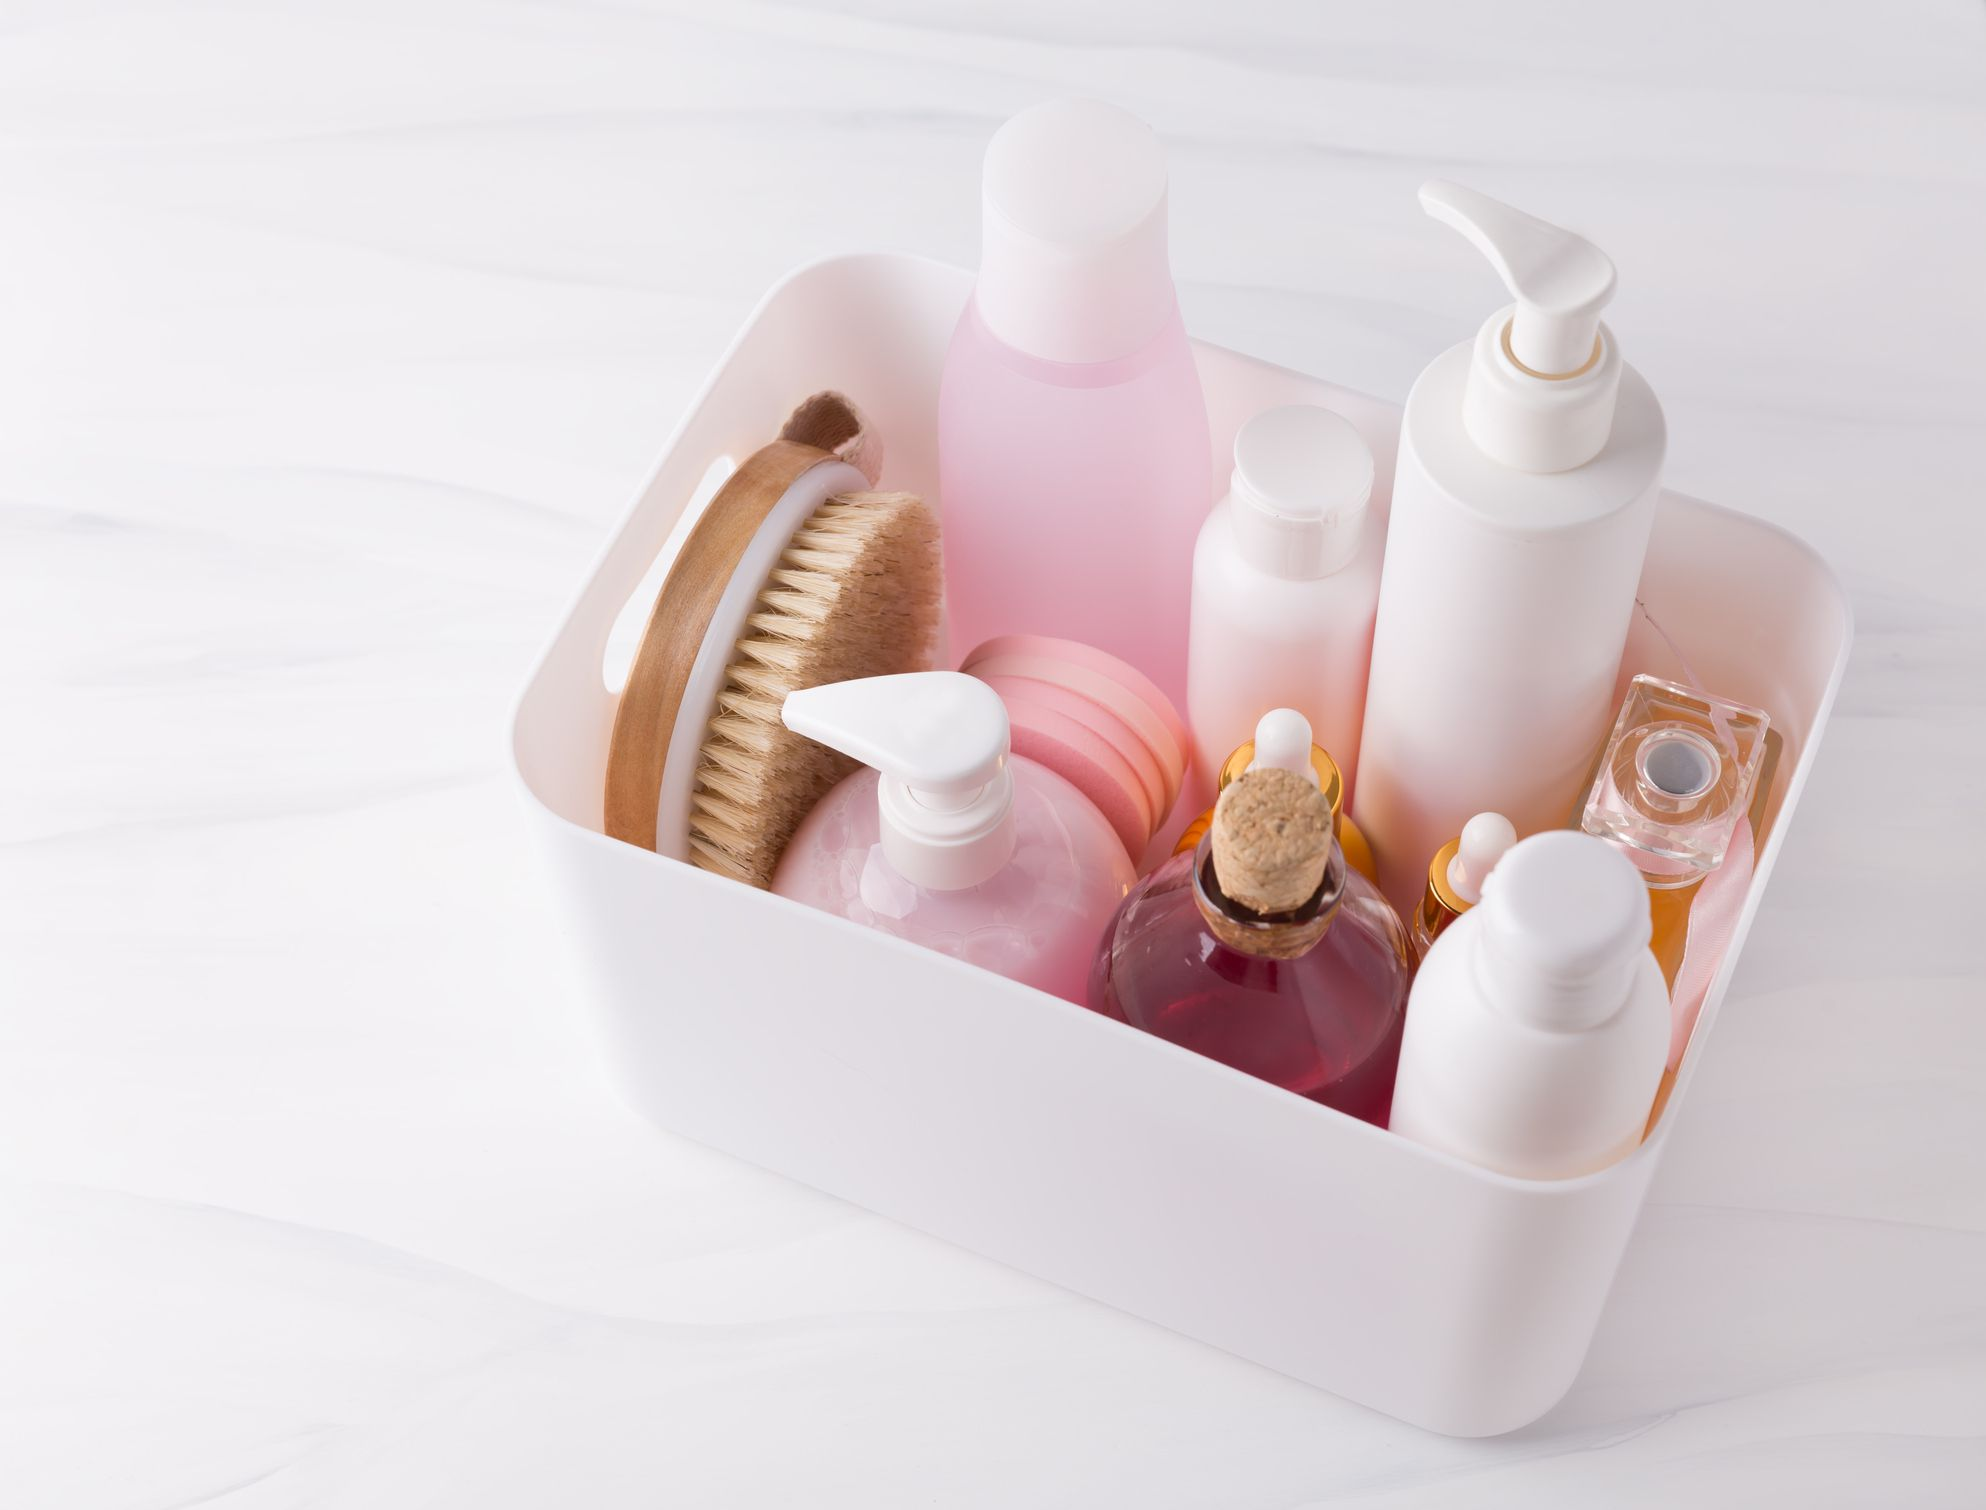 Parred down pink and white beauty and skincare products in a plastic organizer.